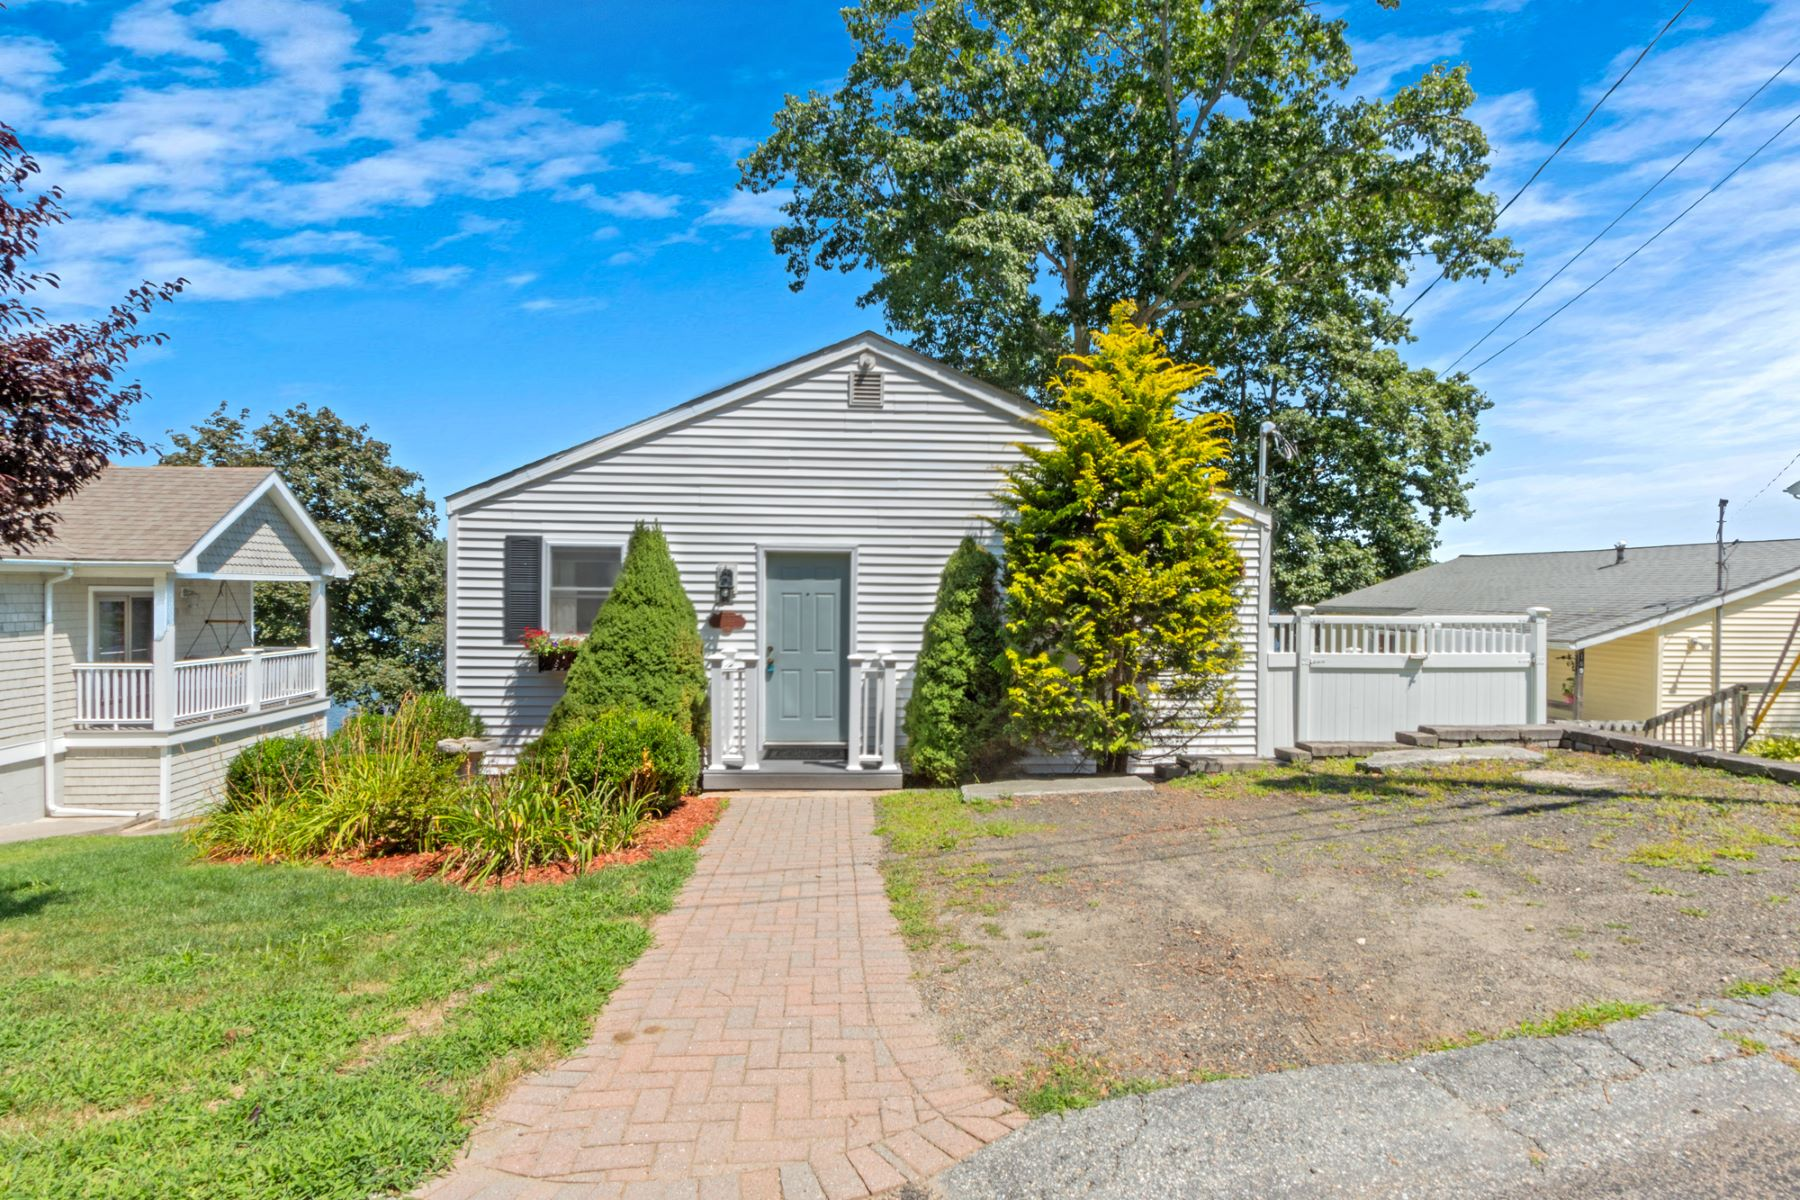 Single Family Homes for Sale at Waterfront Living on Beach Pond! 165 Bennett Rd Voluntown, Connecticut 06384 United States